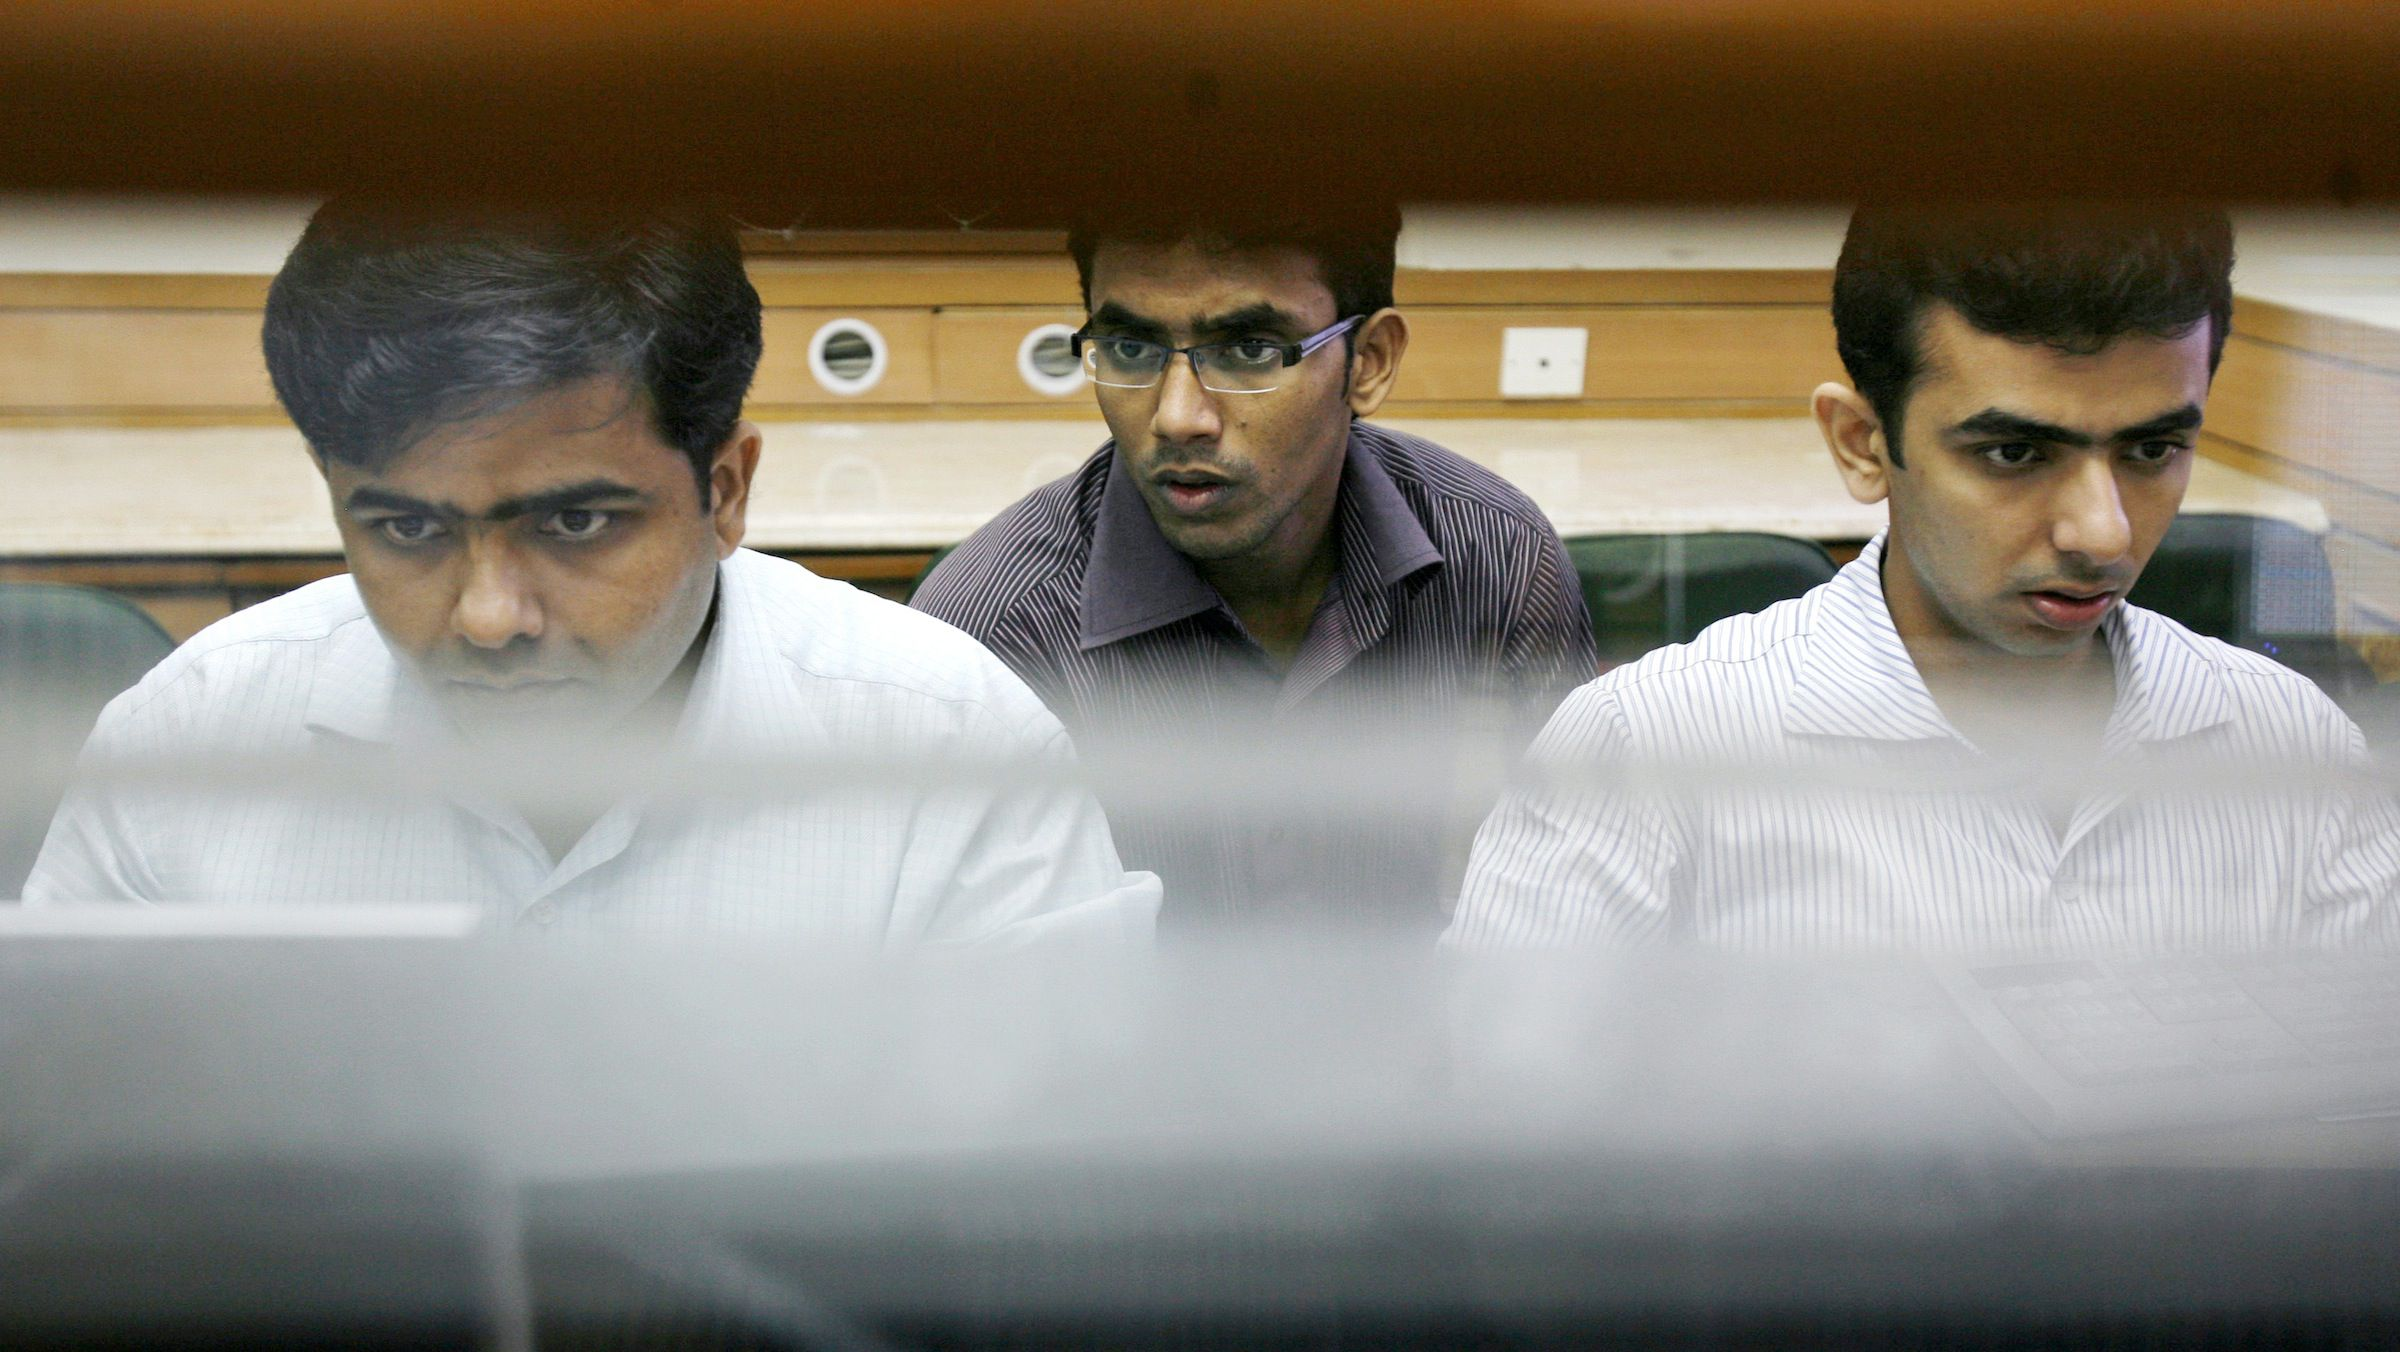 Brokers watch stock prices at a brokerage in Mumbai, India, Monday, Sept. 9, 2008. The Sensex jumped by 623 points Monday on heavy buying by foreign funds and retail investors after the Nuclear Suppliers Group gave a go-ahead for resumption of nuclear cooperation between India and US. (AP Photo/Gautam Singh)